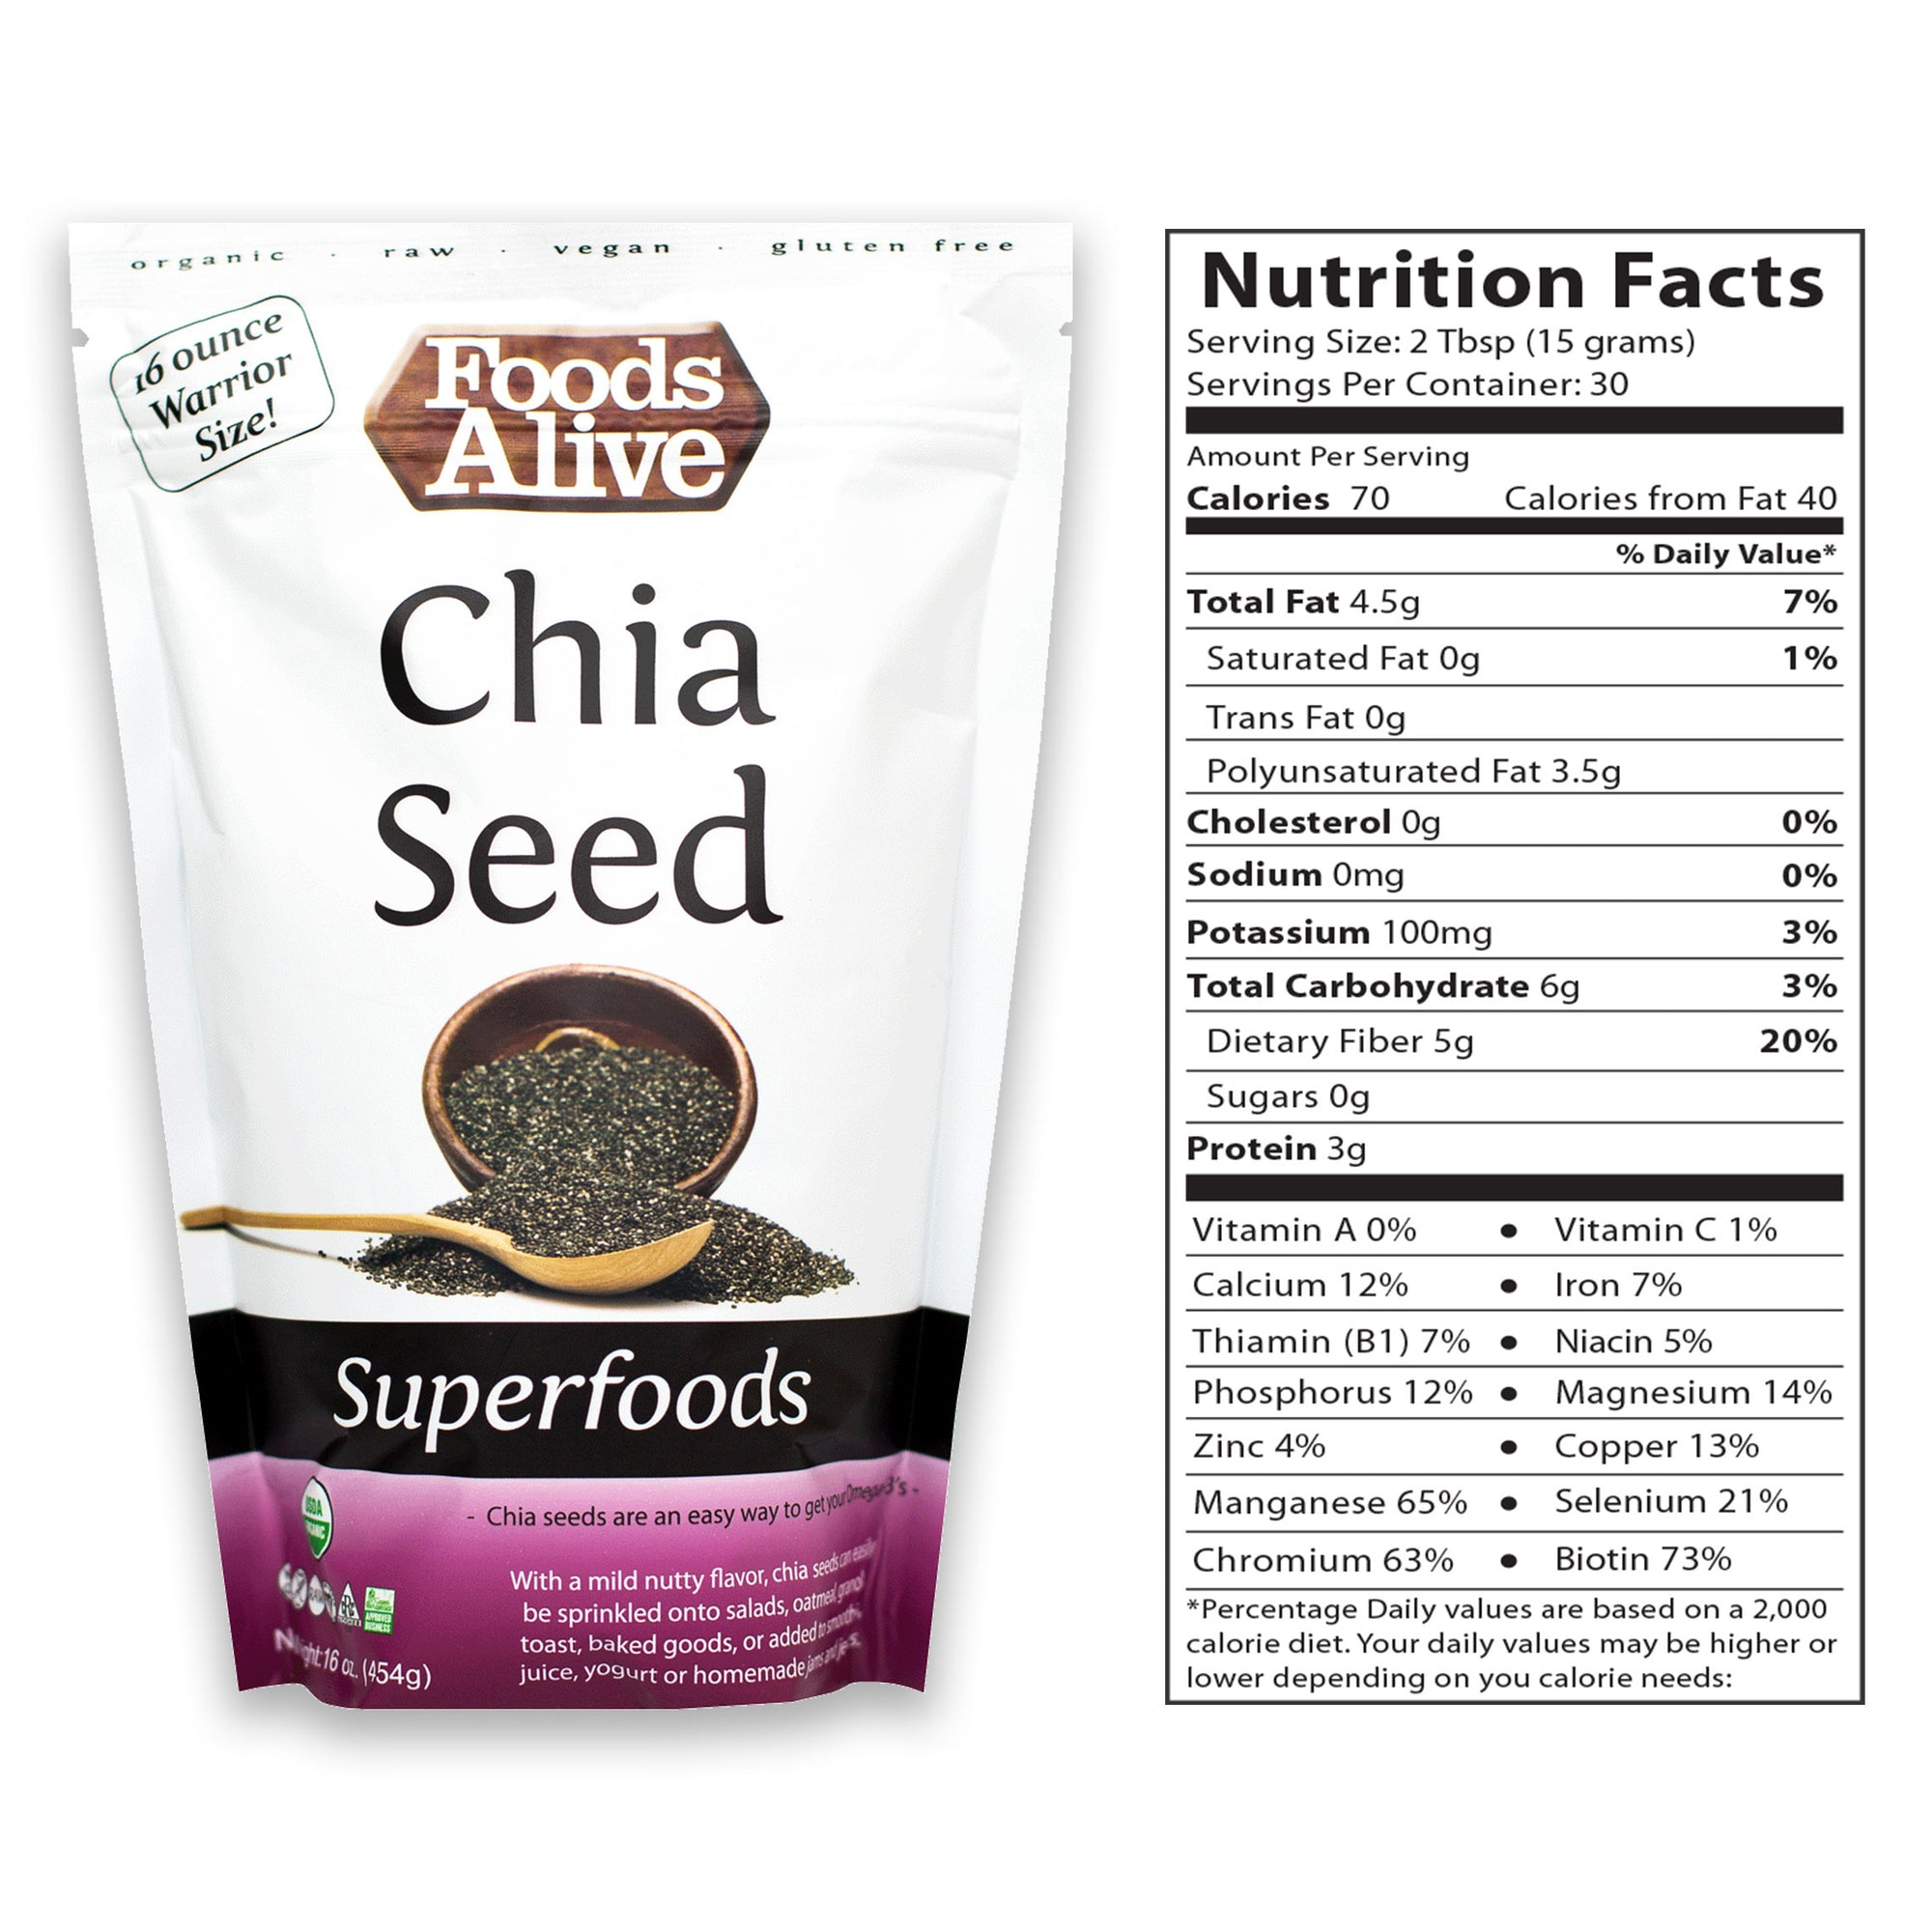 Organic Sprouting Seeds Variety Pack - Chia, Black Sesame, Flax Seed - Foods Alive